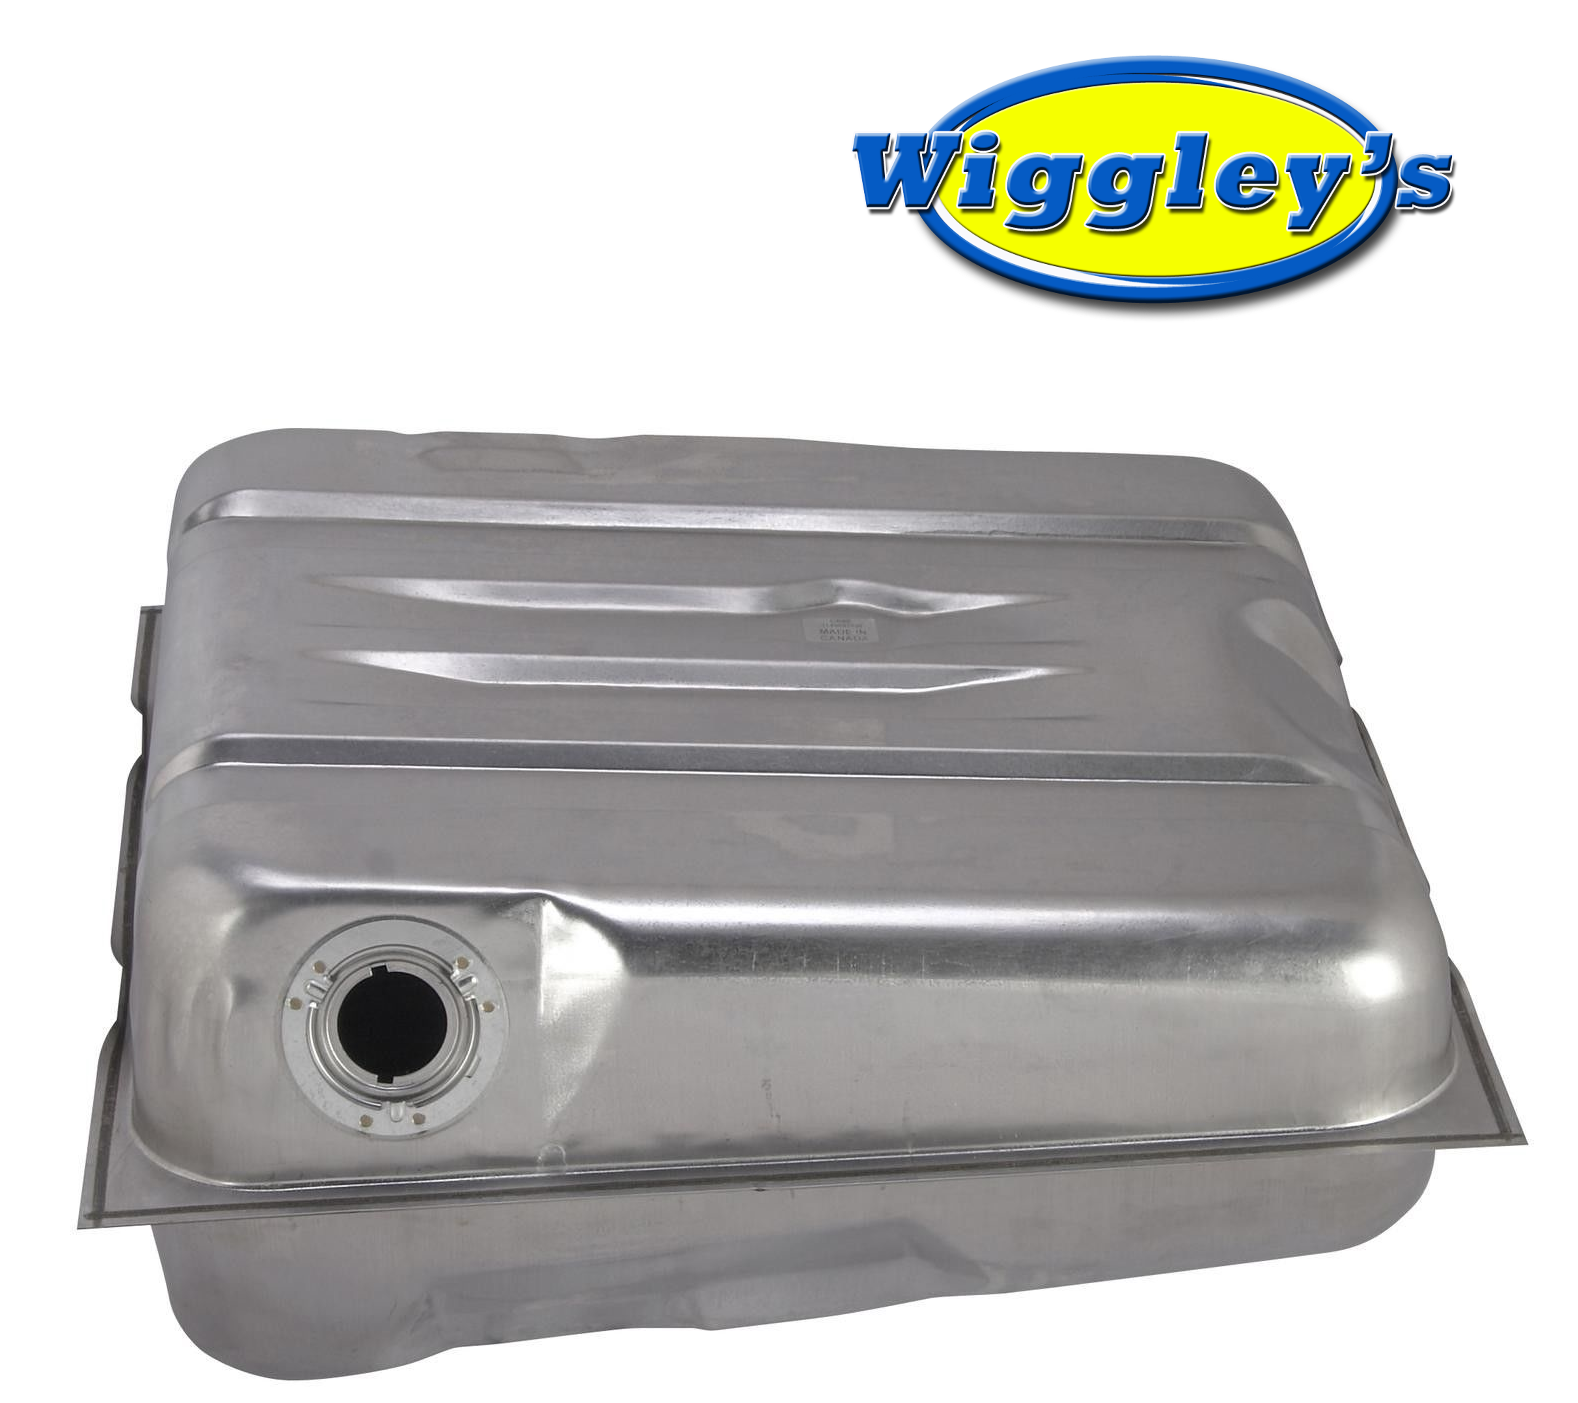 STAINLESS STEEL FUEL TANK ICR8B-SS FITS 70 DODGE CHALLENGER 7.2L-V8 w/o E.E.C.